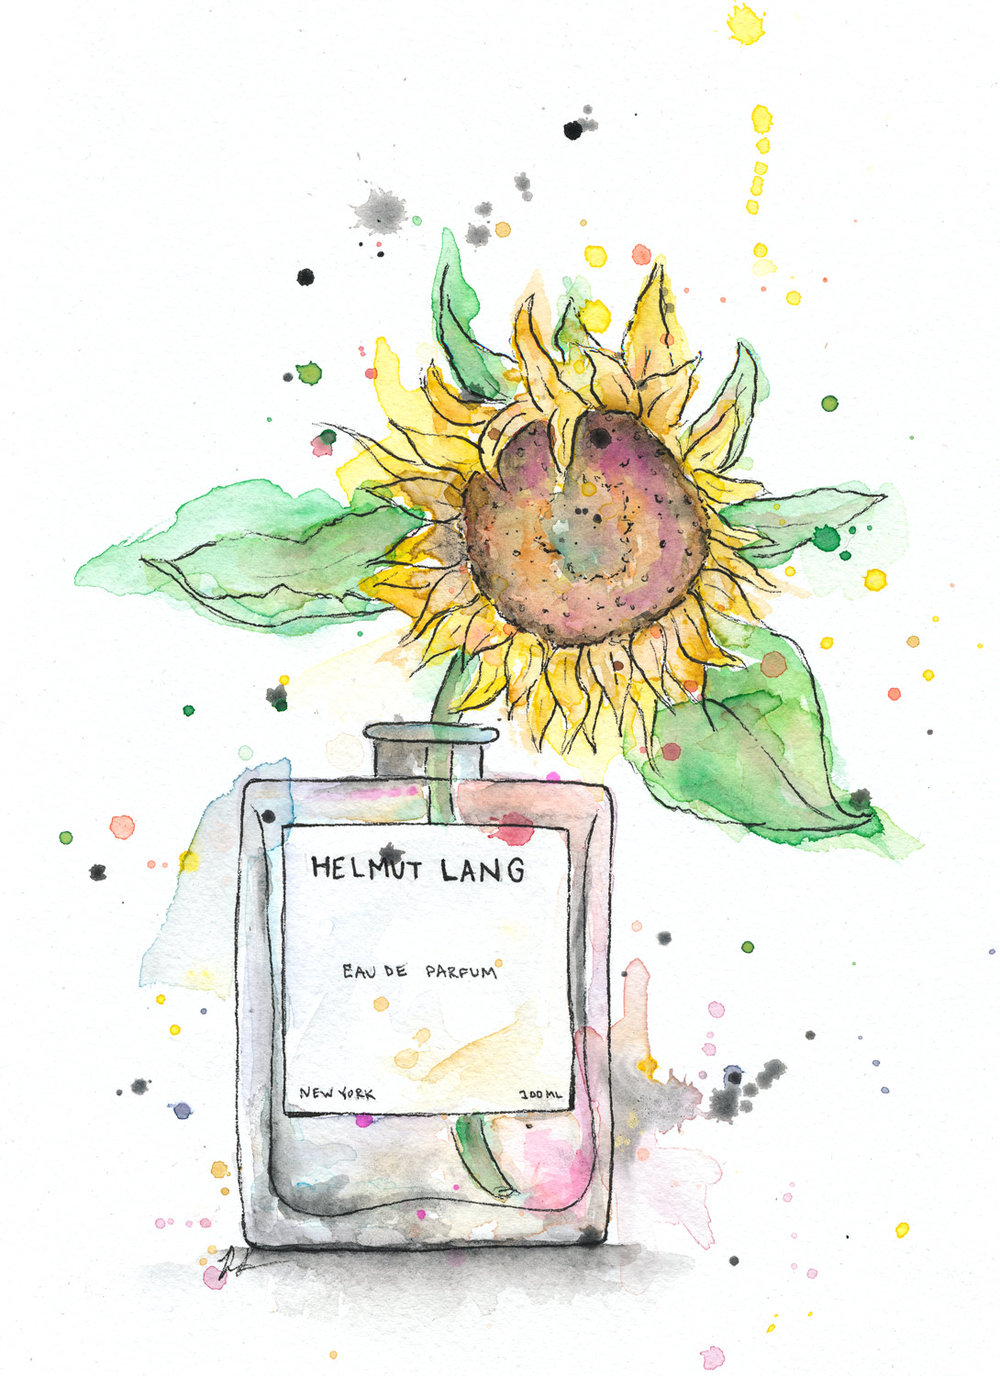 Benjamin-Edward-Helmut-Lange-Eau-De-Parfum-Sunflower-Perfume-watercolour-illustration.jpg